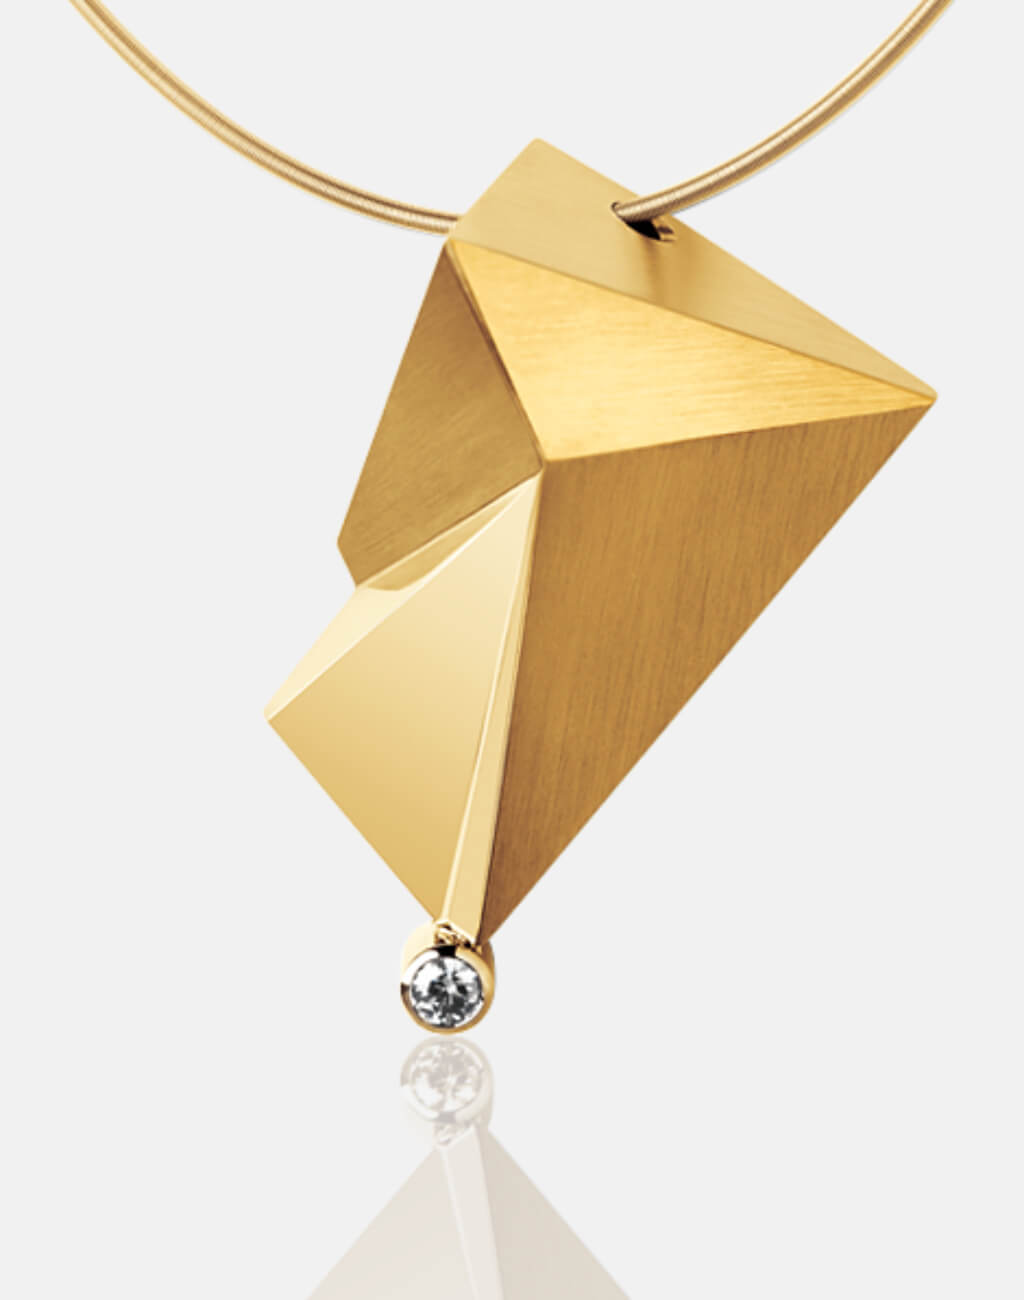 Cyllene | Collier, Kettenanhänger, Kette, 750/- Gelbgold, Brillant, Diamant | necklace, pendant, 18kt yellow gold, diamond | SYNO-Schmuck.com